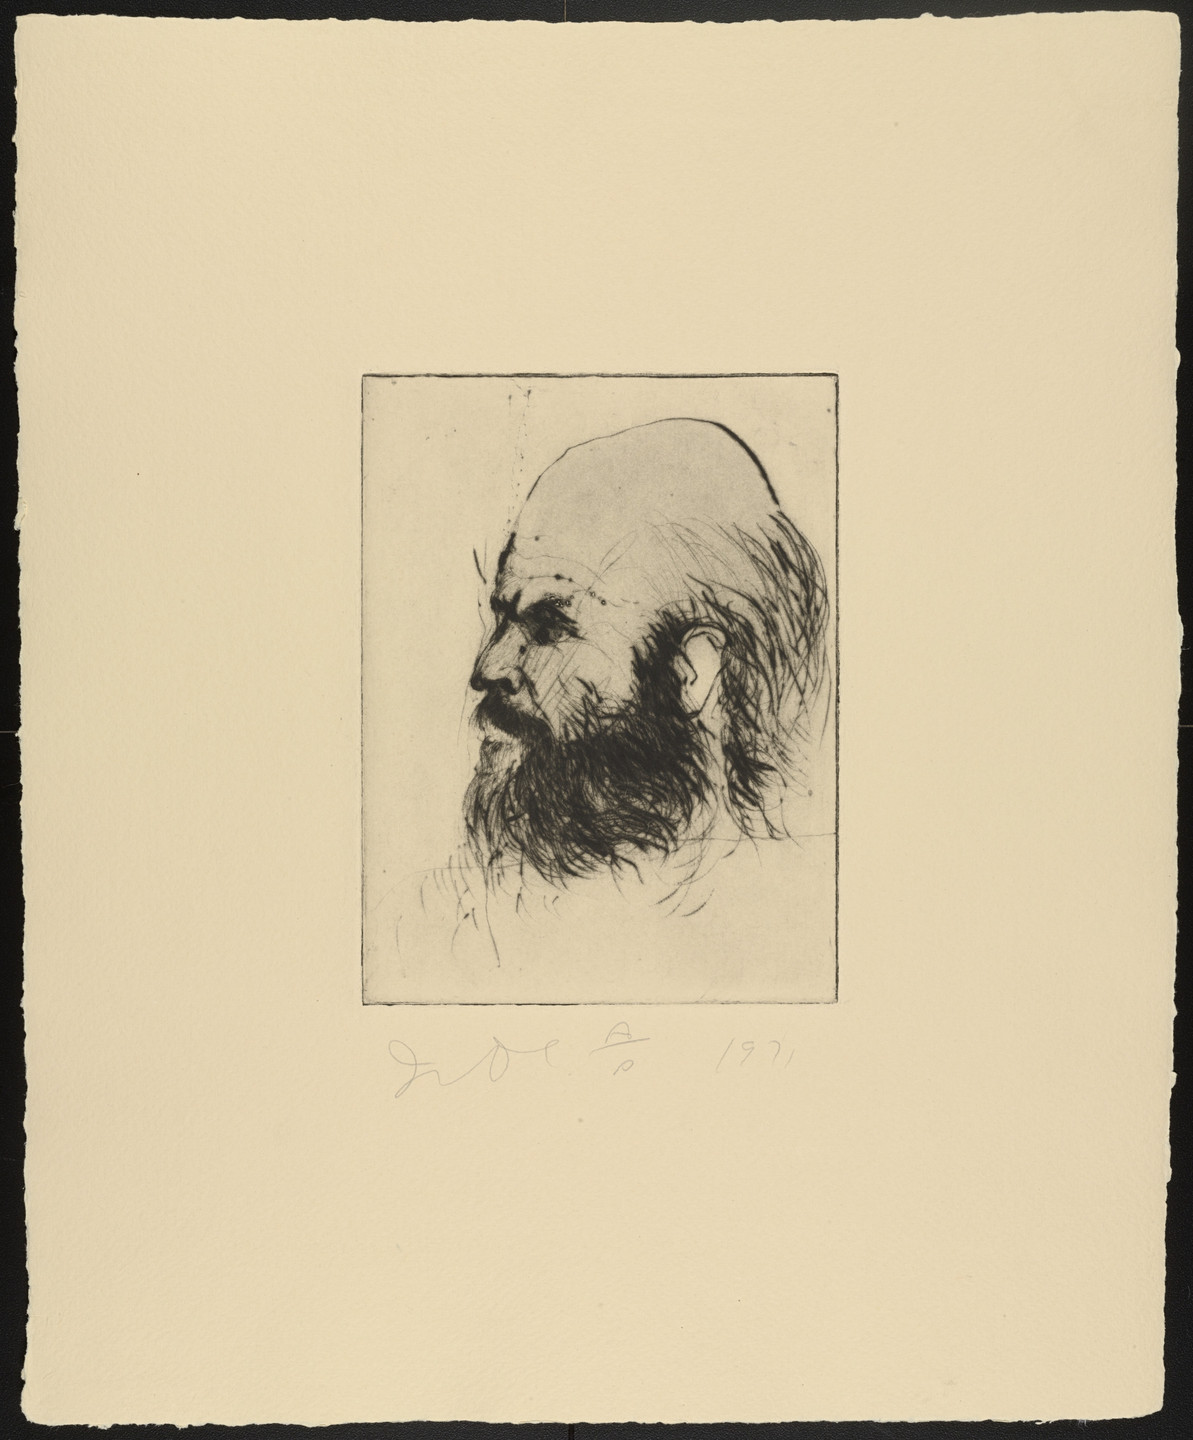 Jim Dine. Self Portraits (1971). 1971